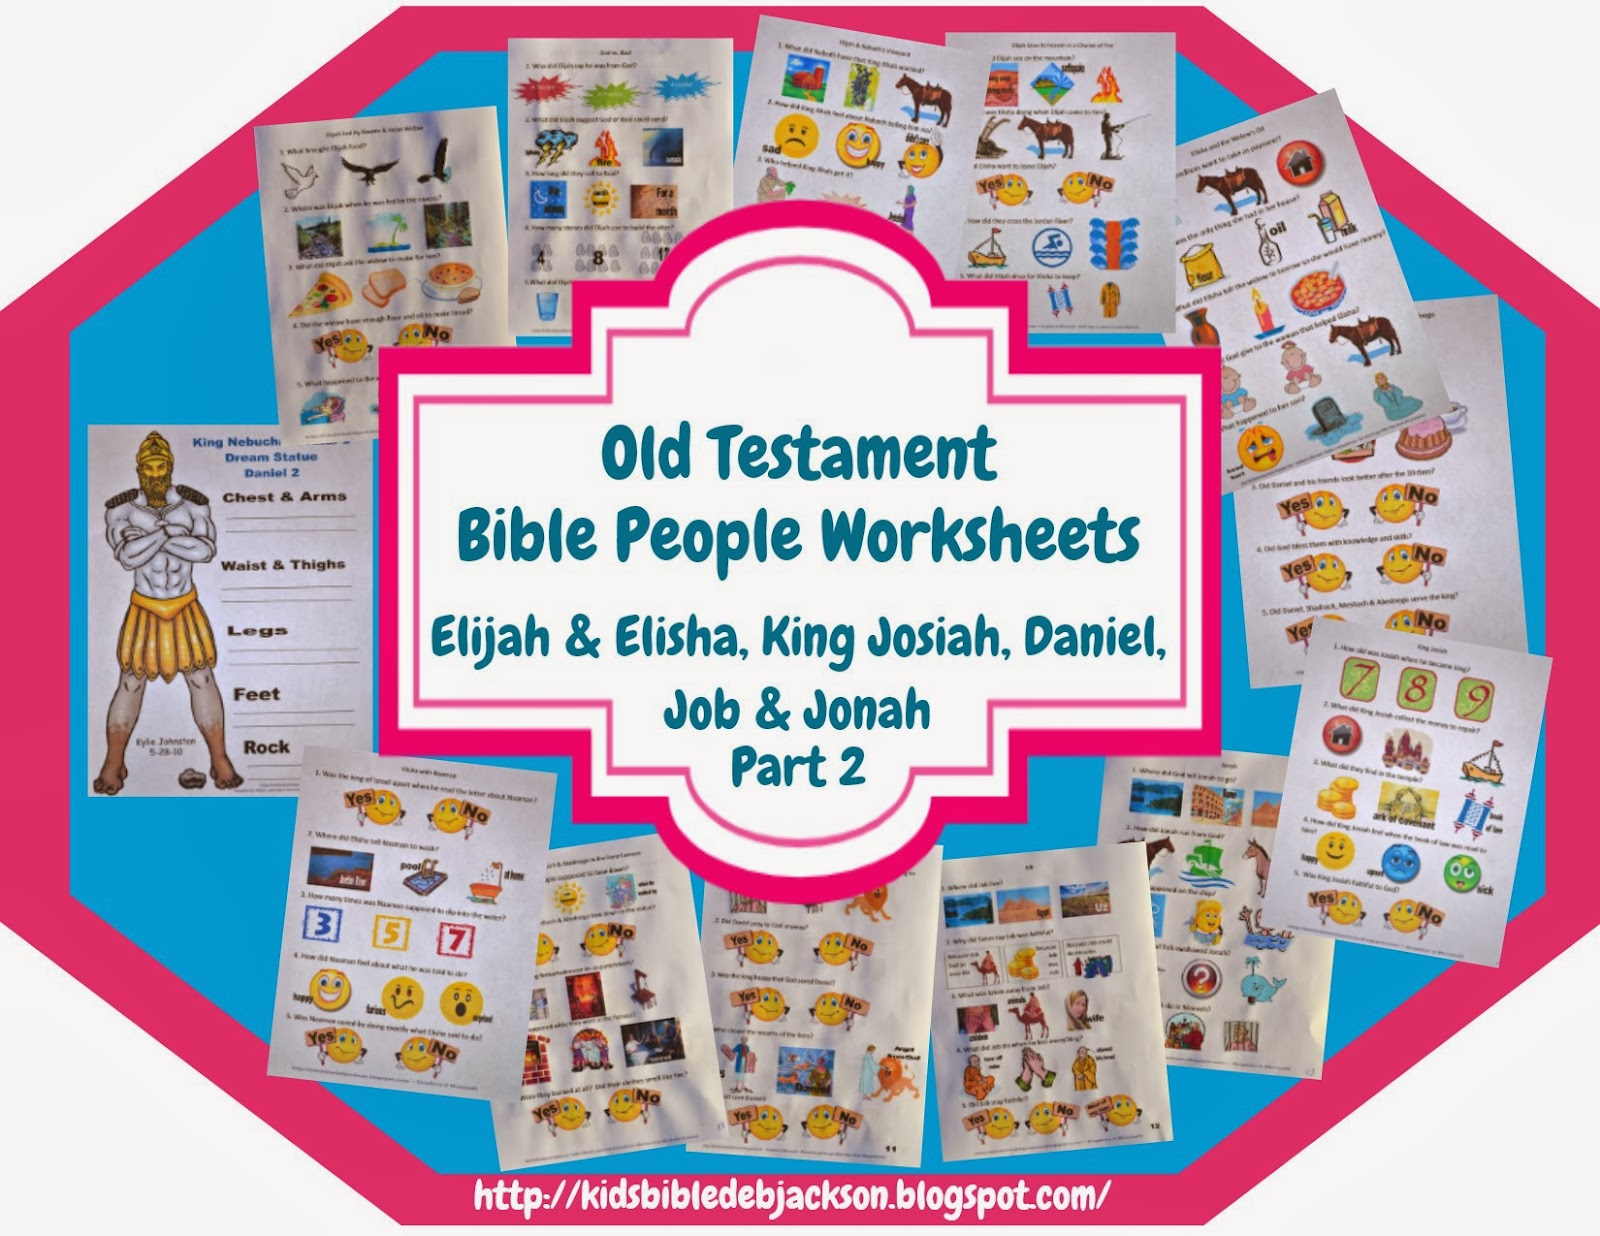 http://kidsbibledebjackson.blogspot.com/2014/01/old-testament-bible-people-worksheets.html